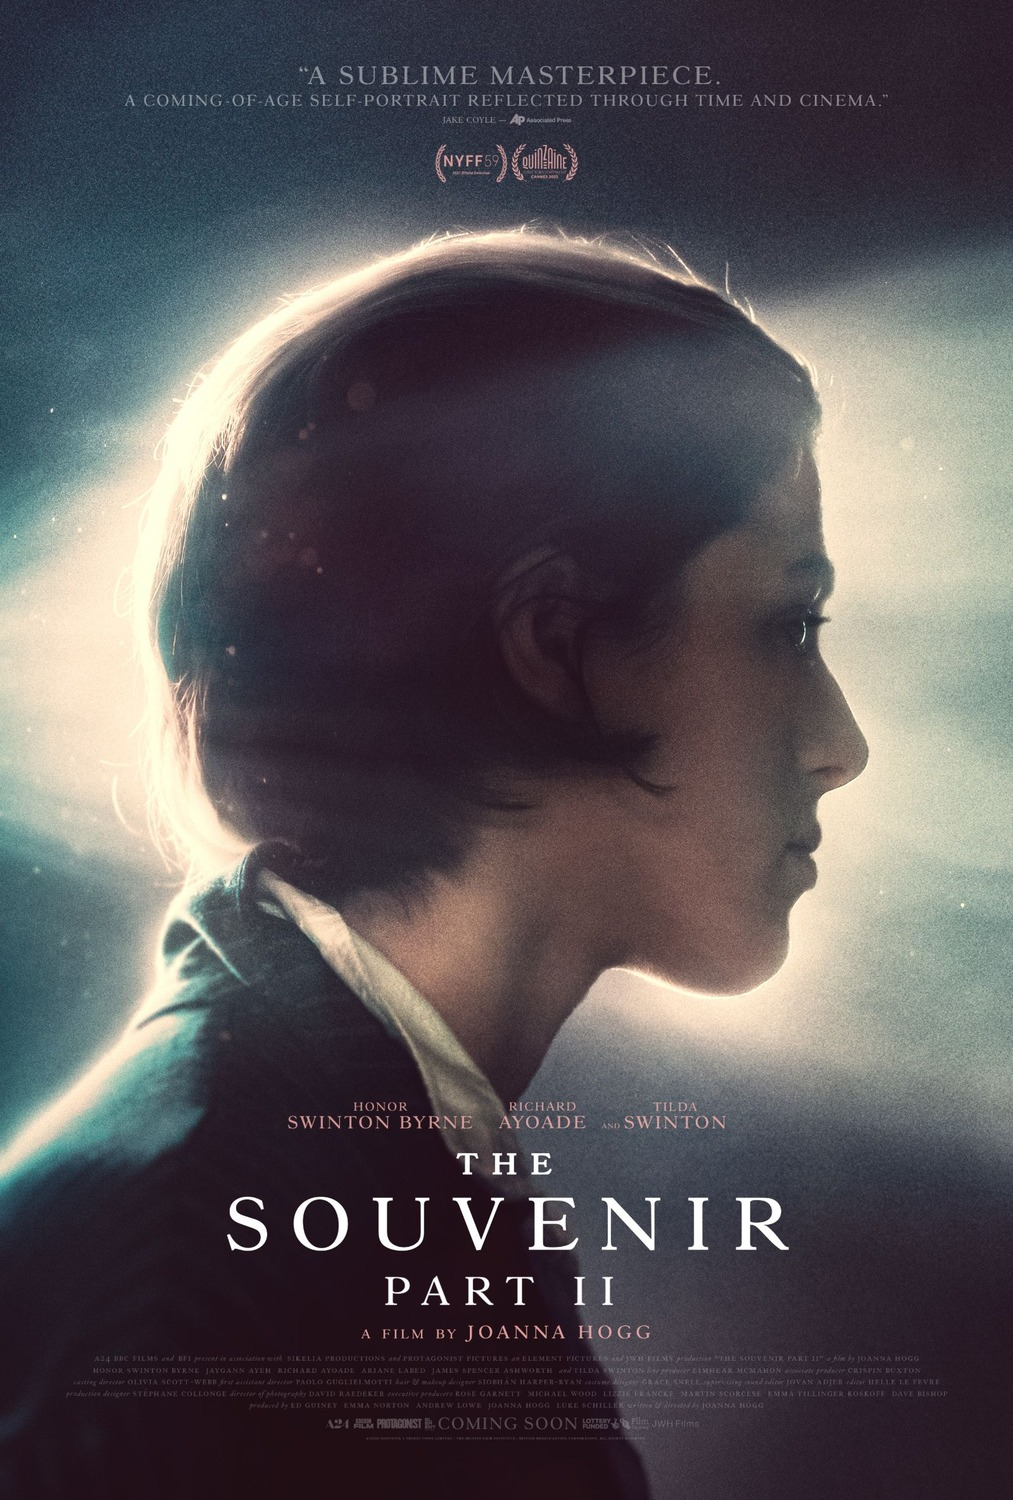 Movie poster image for THE SOUVENIR: PART II